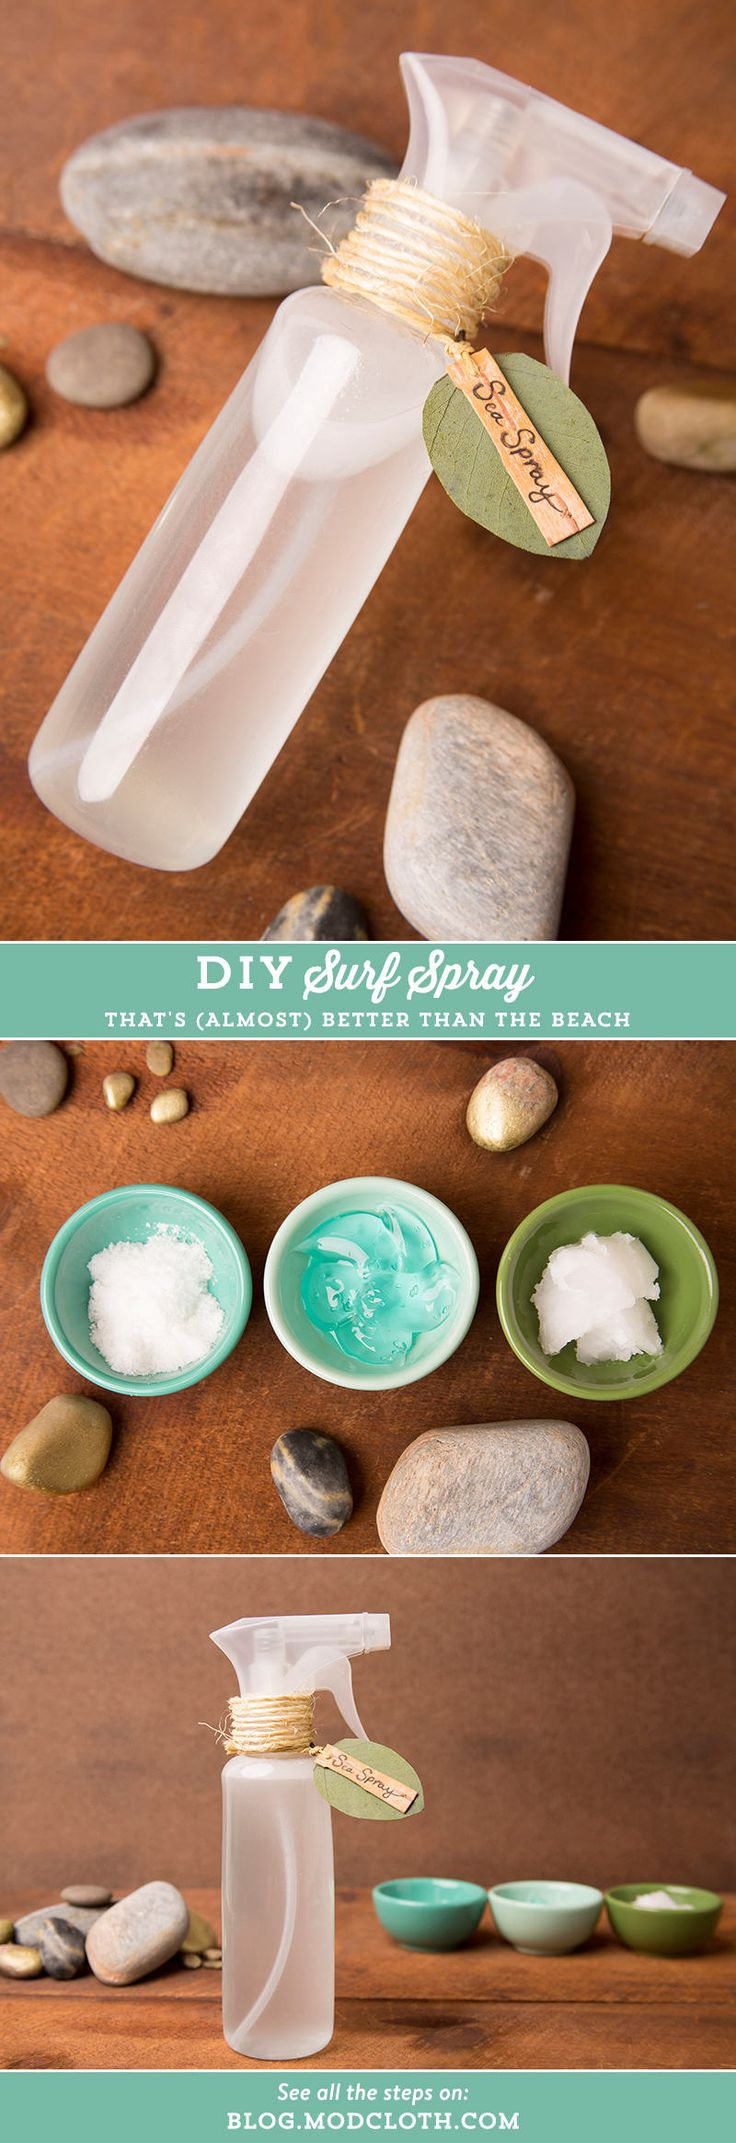 Surfs up! Care for your hair with simple, 4-ingredient (if you count water as an ingredient) surf spray. #diy #howto #hair #beauty